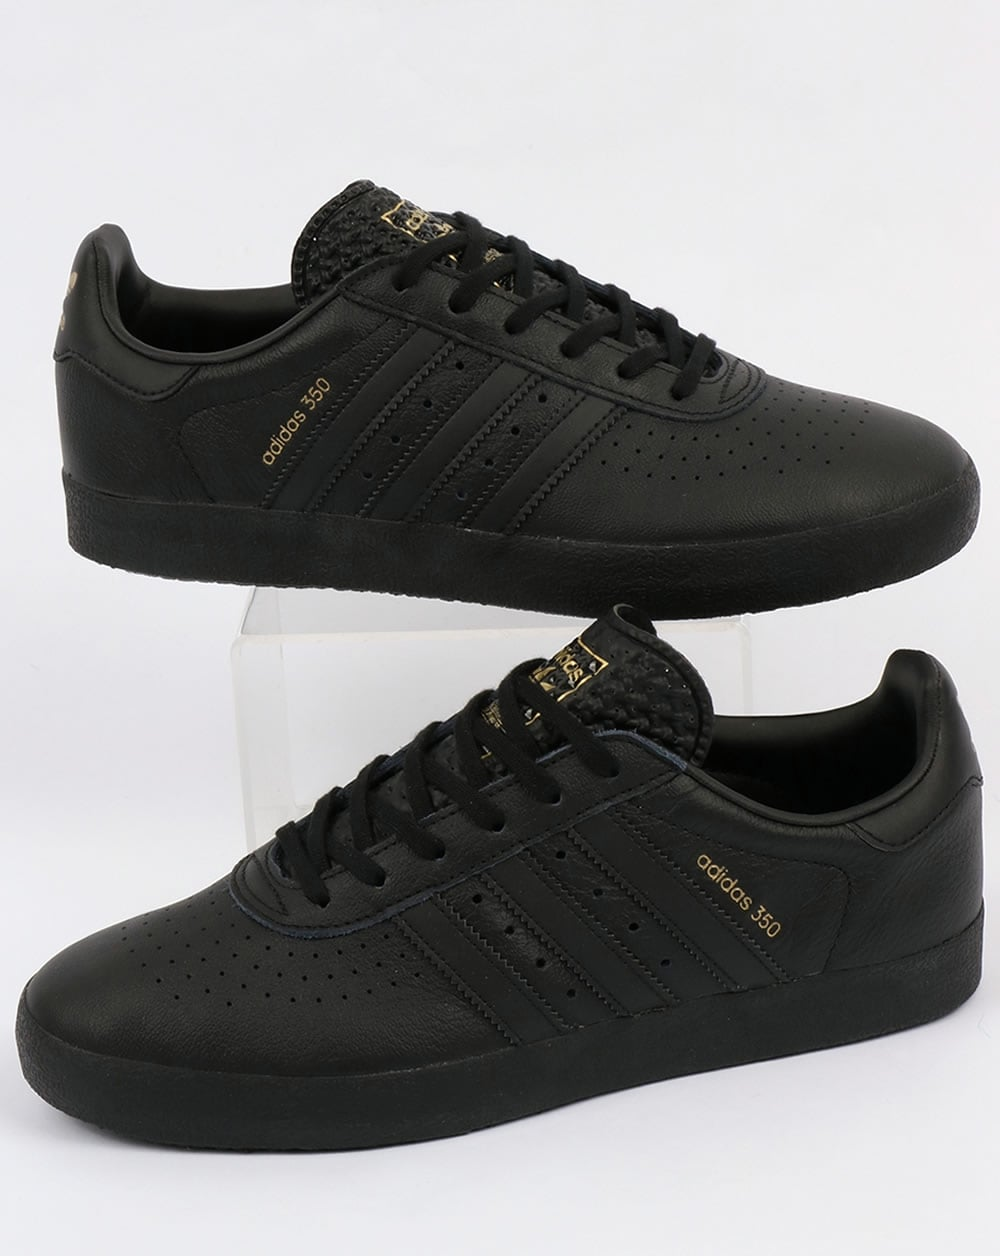 on sale 637b8 c7492 adidas Trainers Adidas 350 Trainers Black